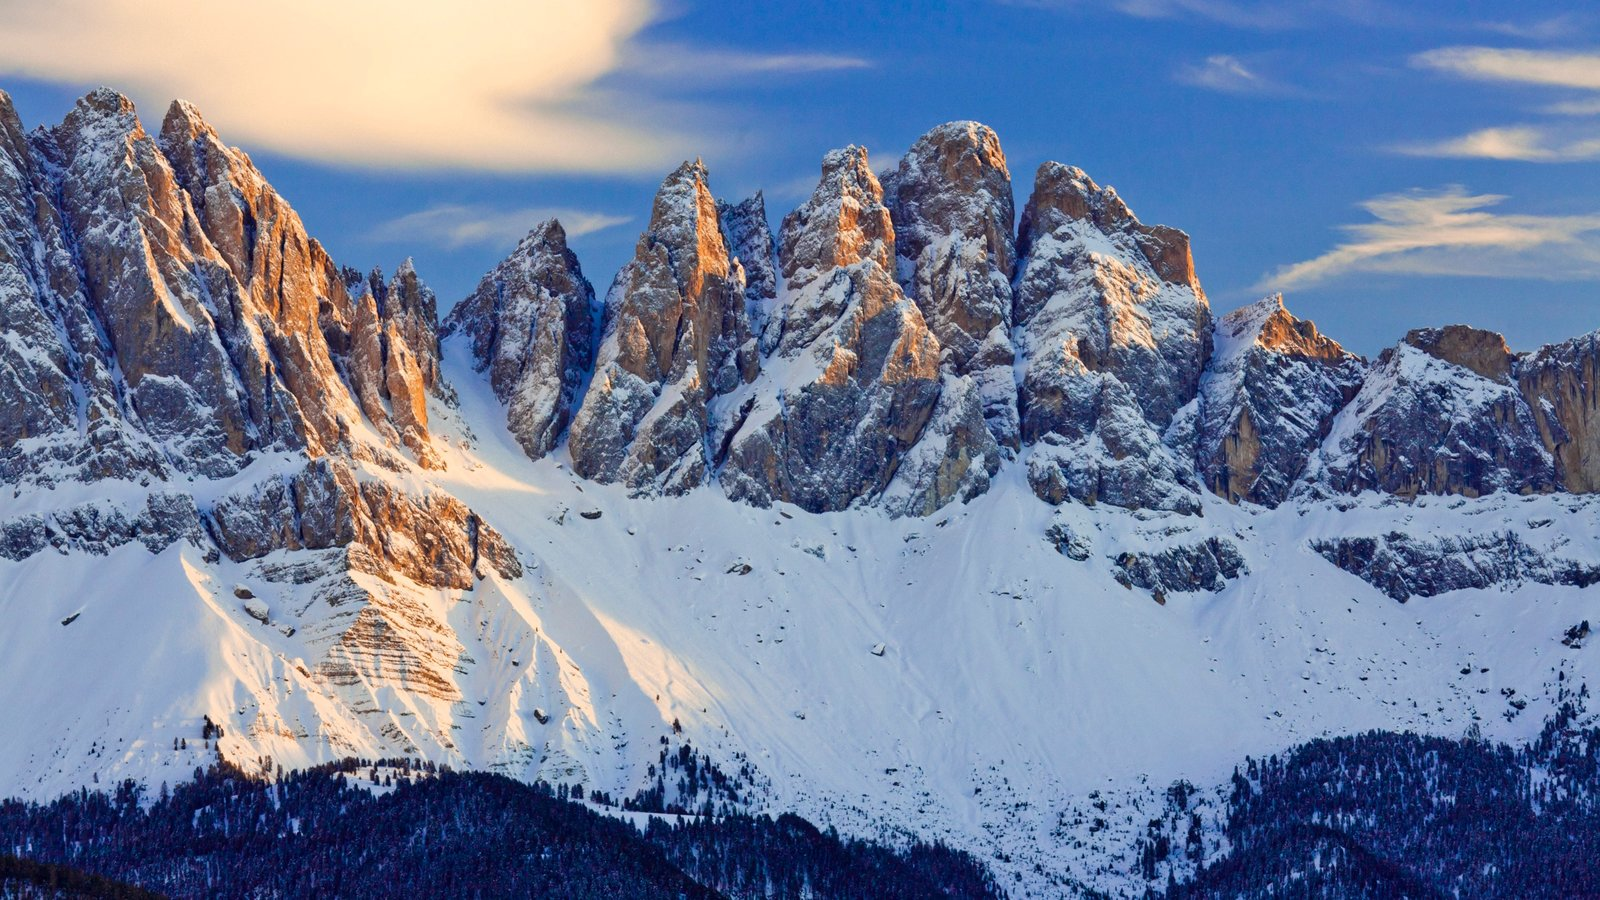 Alto Adige - South Tyrol showing mountains and snow